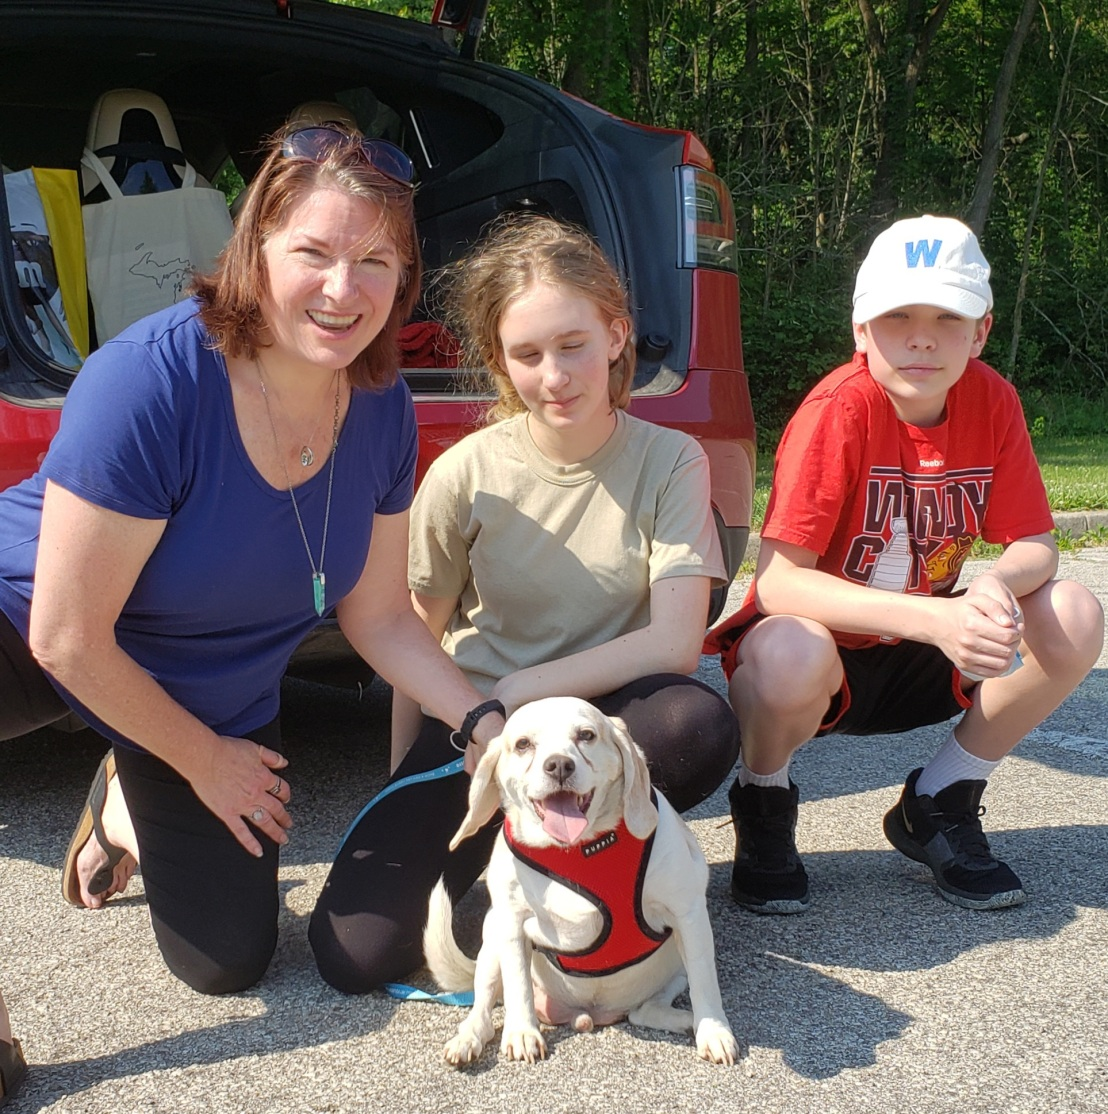 dUDLEY aDOPTED 20200618